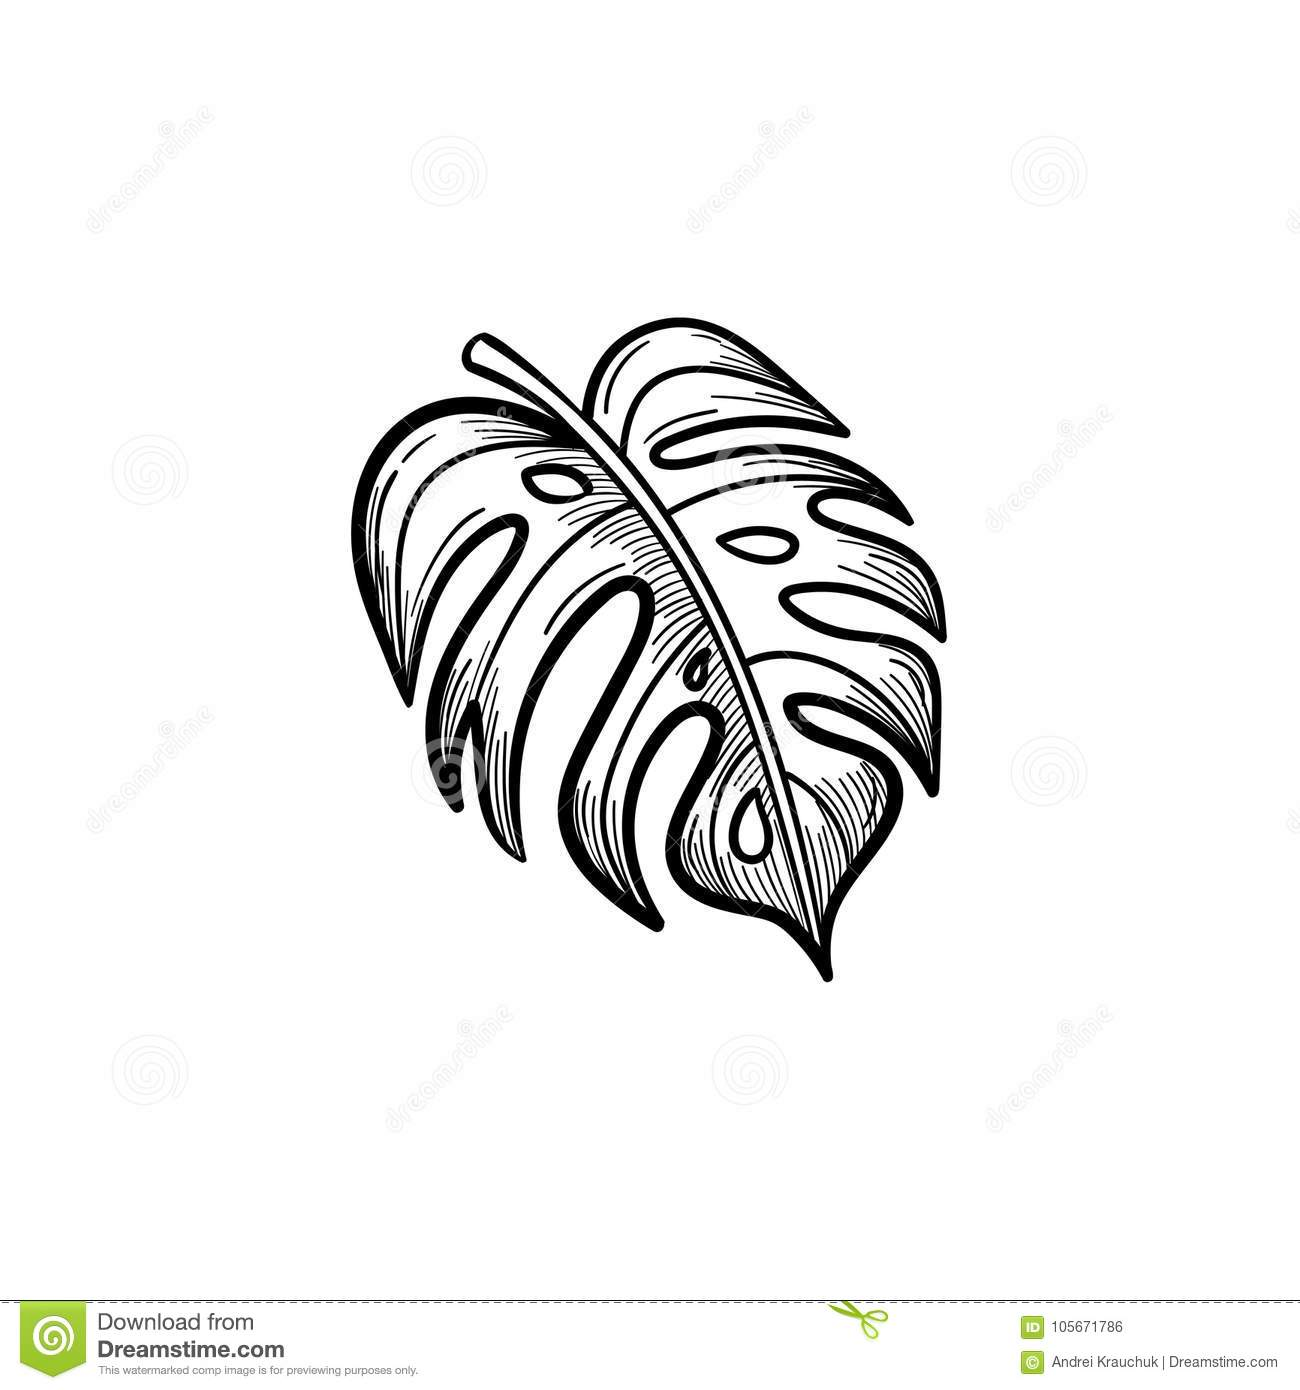 Palm Leaf Hand Drawn Sketch Icon Stock Vector Illustration Of Root Minimal 105671786 Here you can explore hq tropical leaves transparent illustrations, icons and clipart with filter setting like size, type, color etc. https www dreamstime com vector hand drawn palm leaf outline doodle icon sketch illustration print web mobile infographics isolated white image105671786